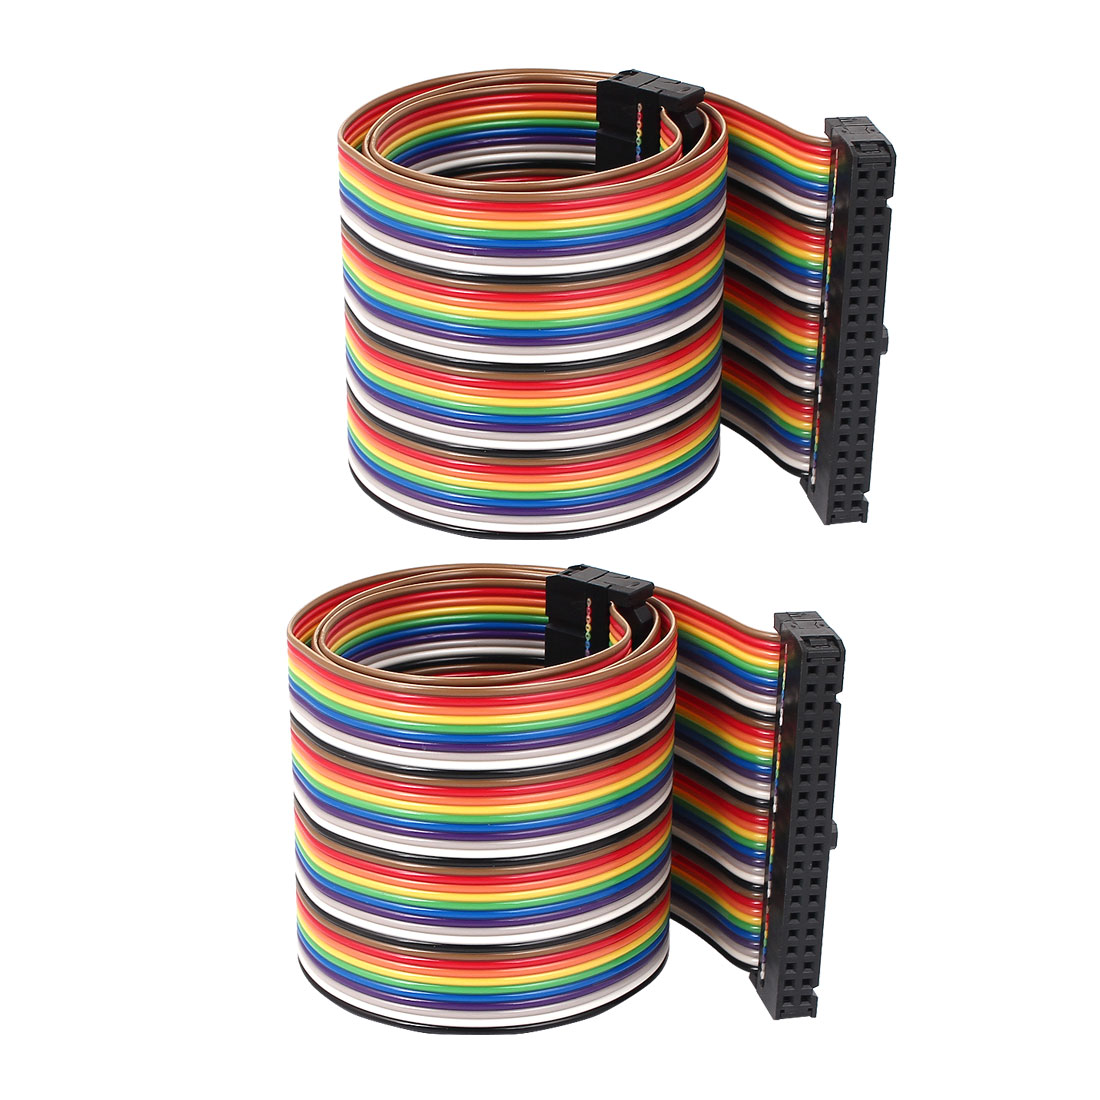 50cm 40 Pin 40 Way F/F Connector IDC Flat Rainbow Color Ribbon Cable for DIY 2pcs